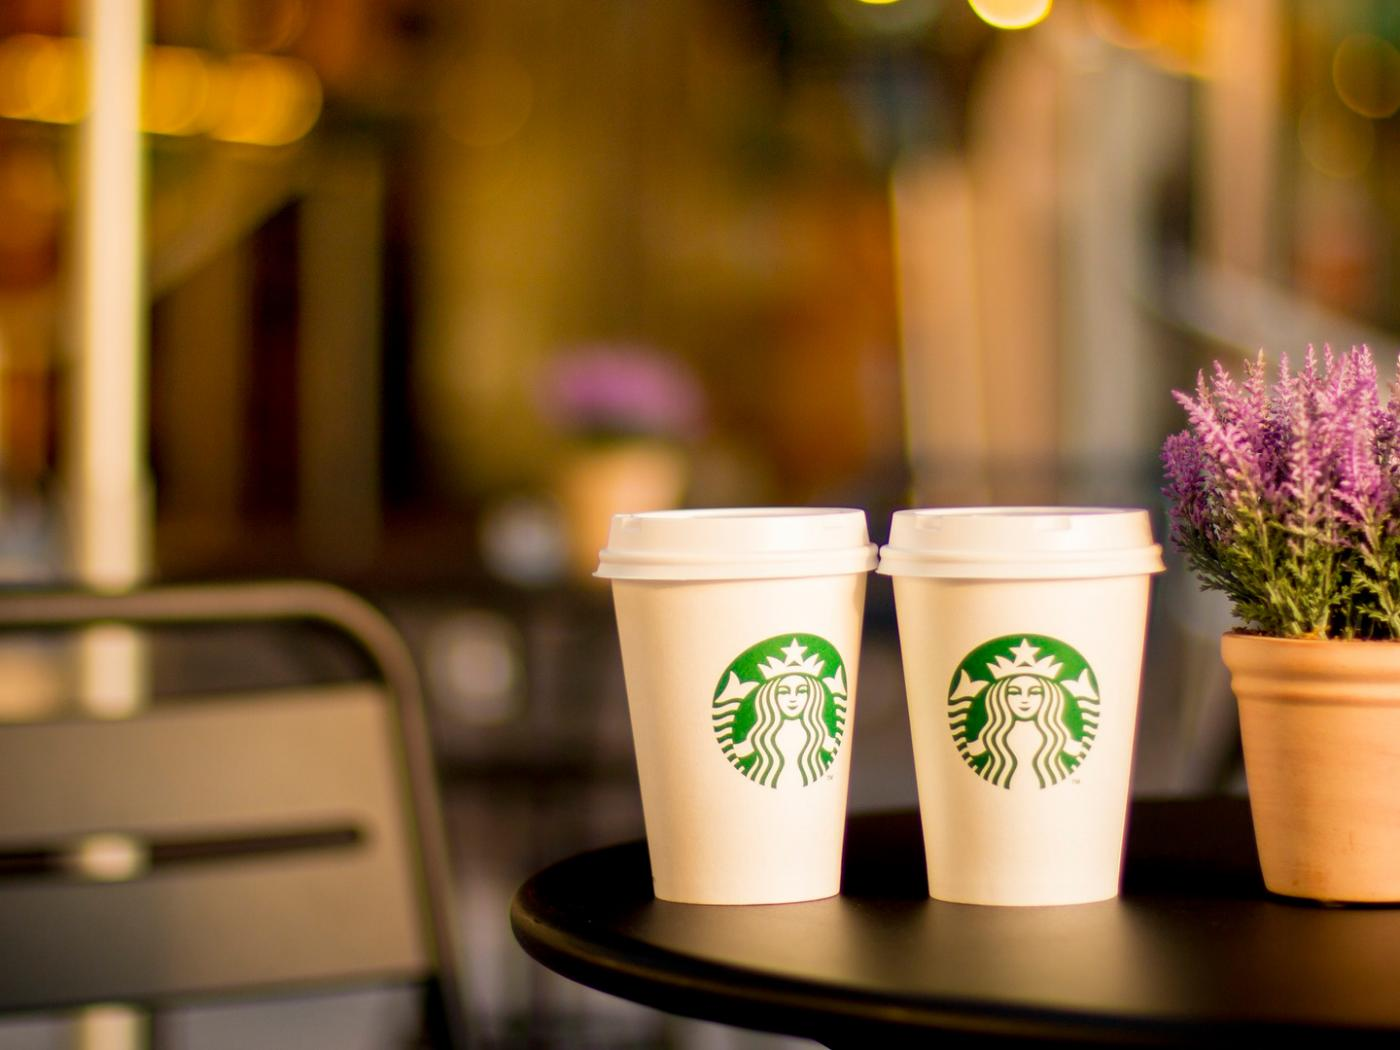 Starbucks Pictures in HD with Two Cups on Table - HD